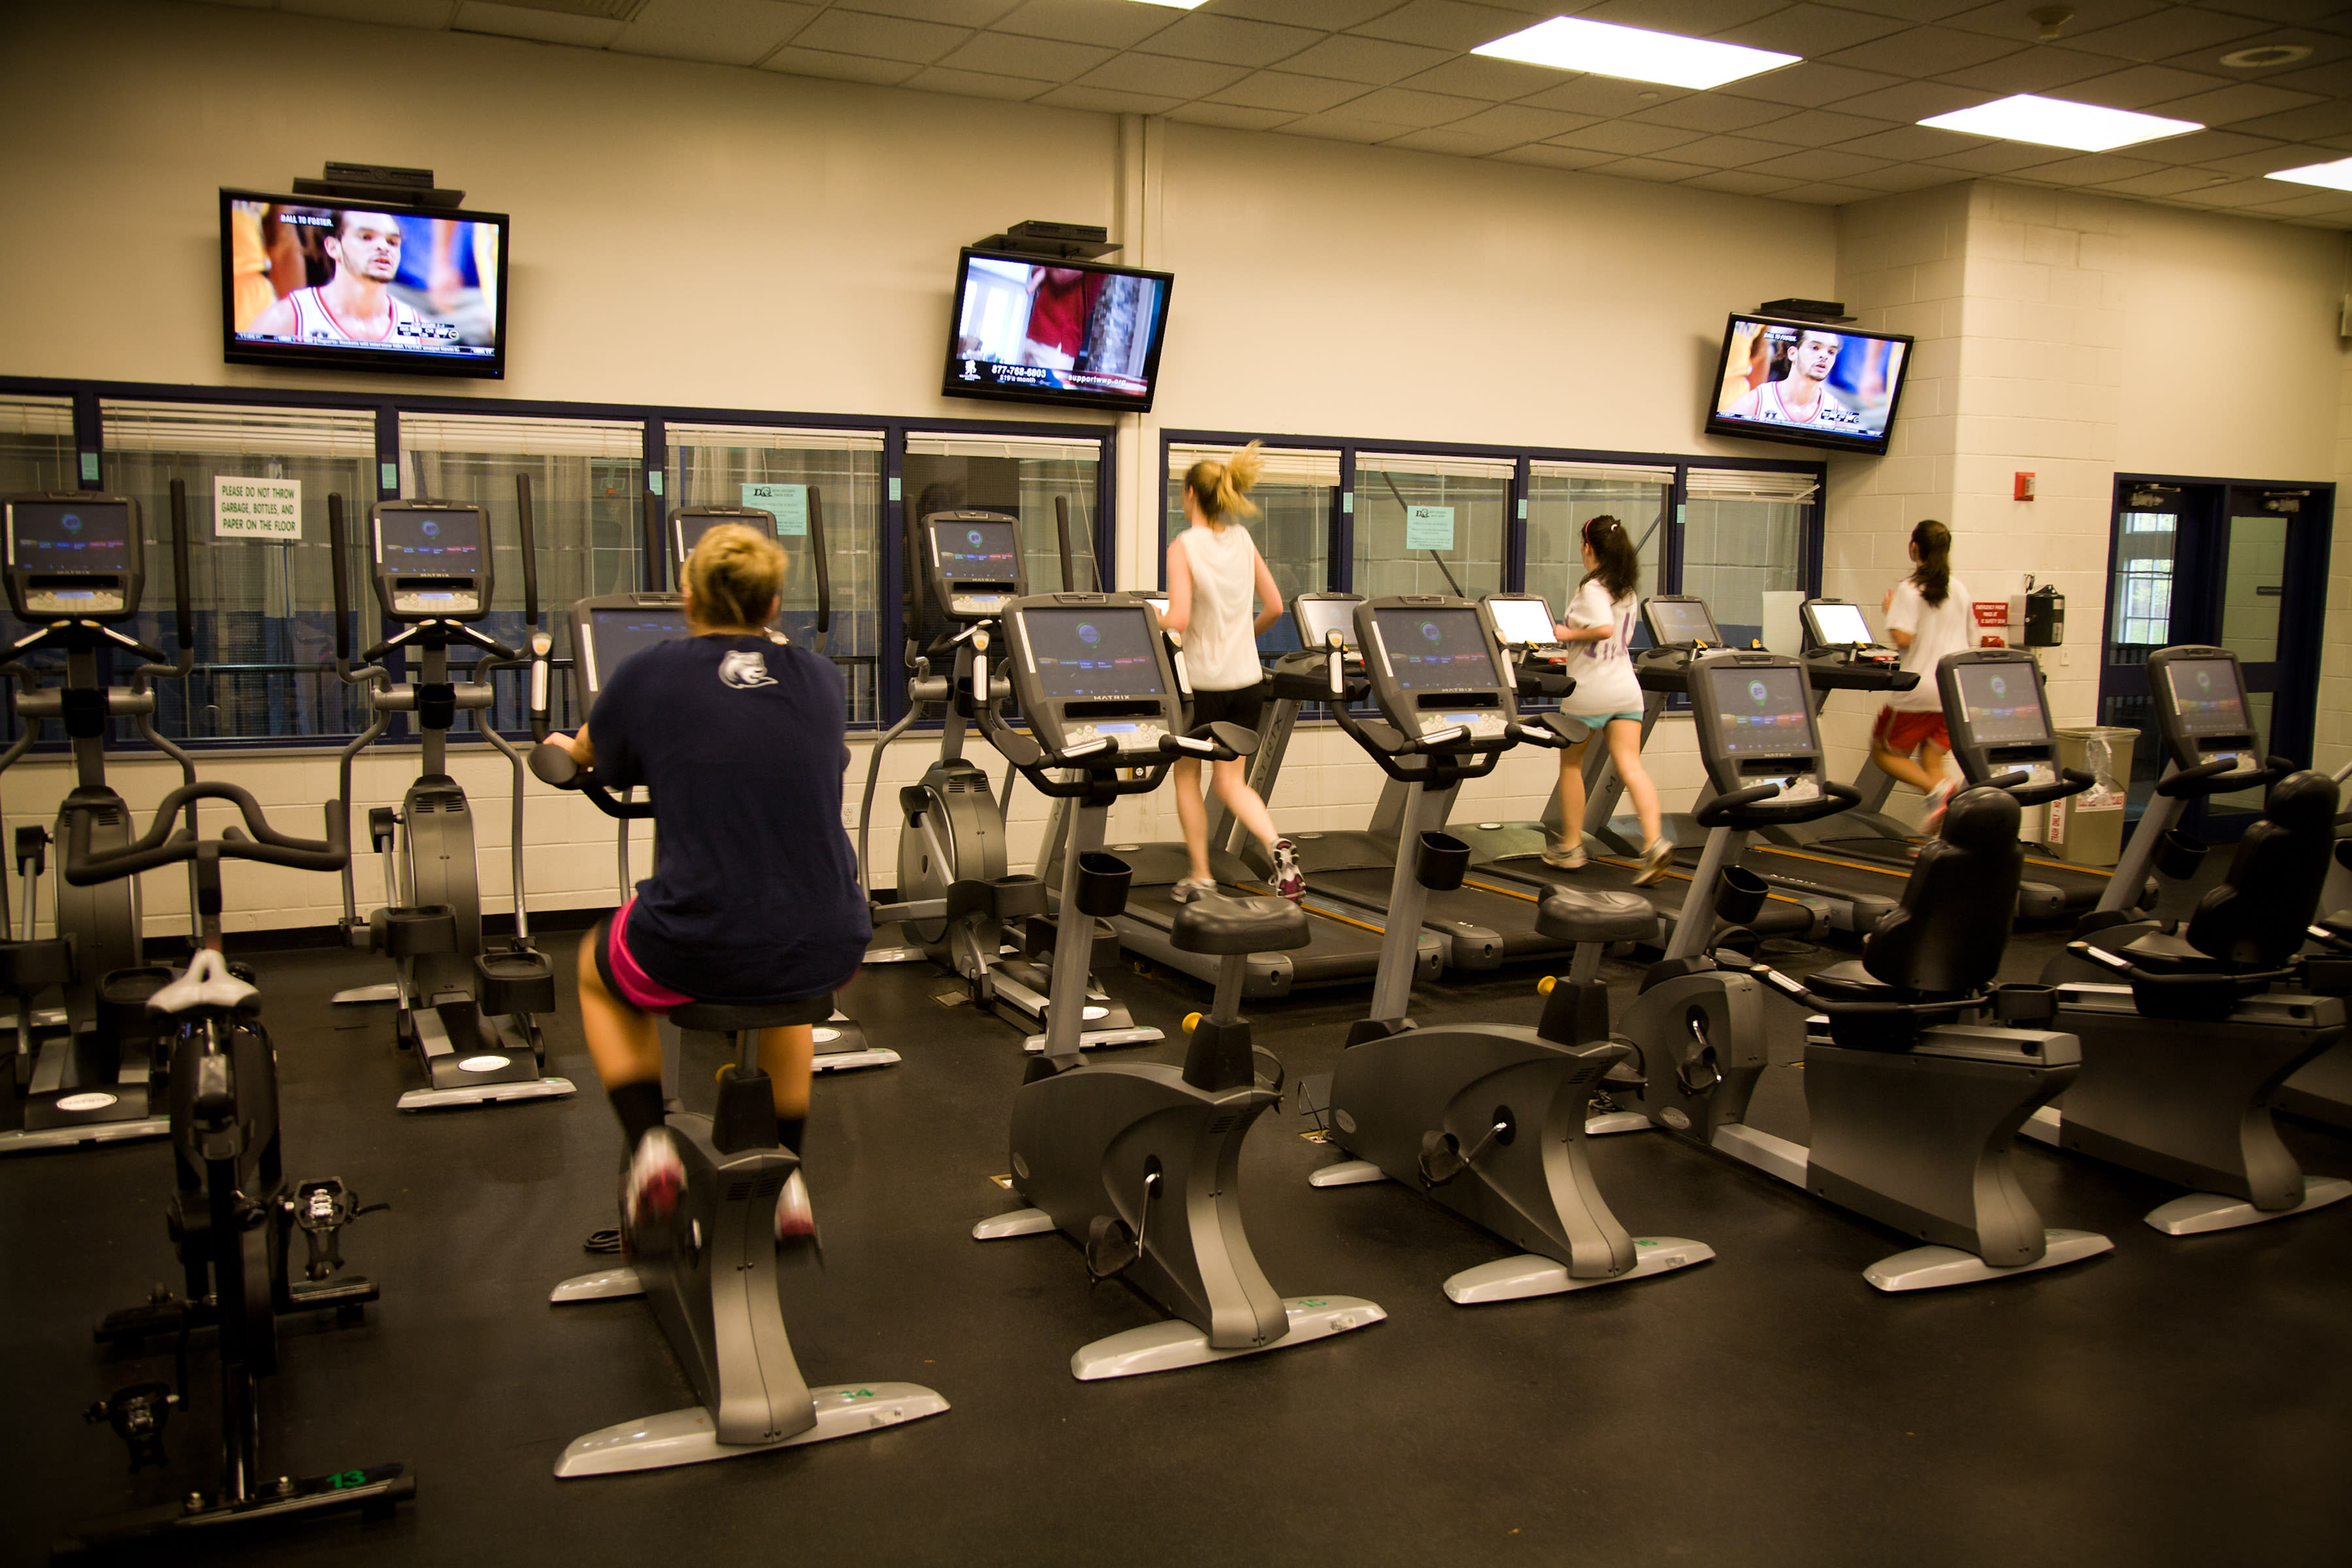 Enjoy free access to university gym